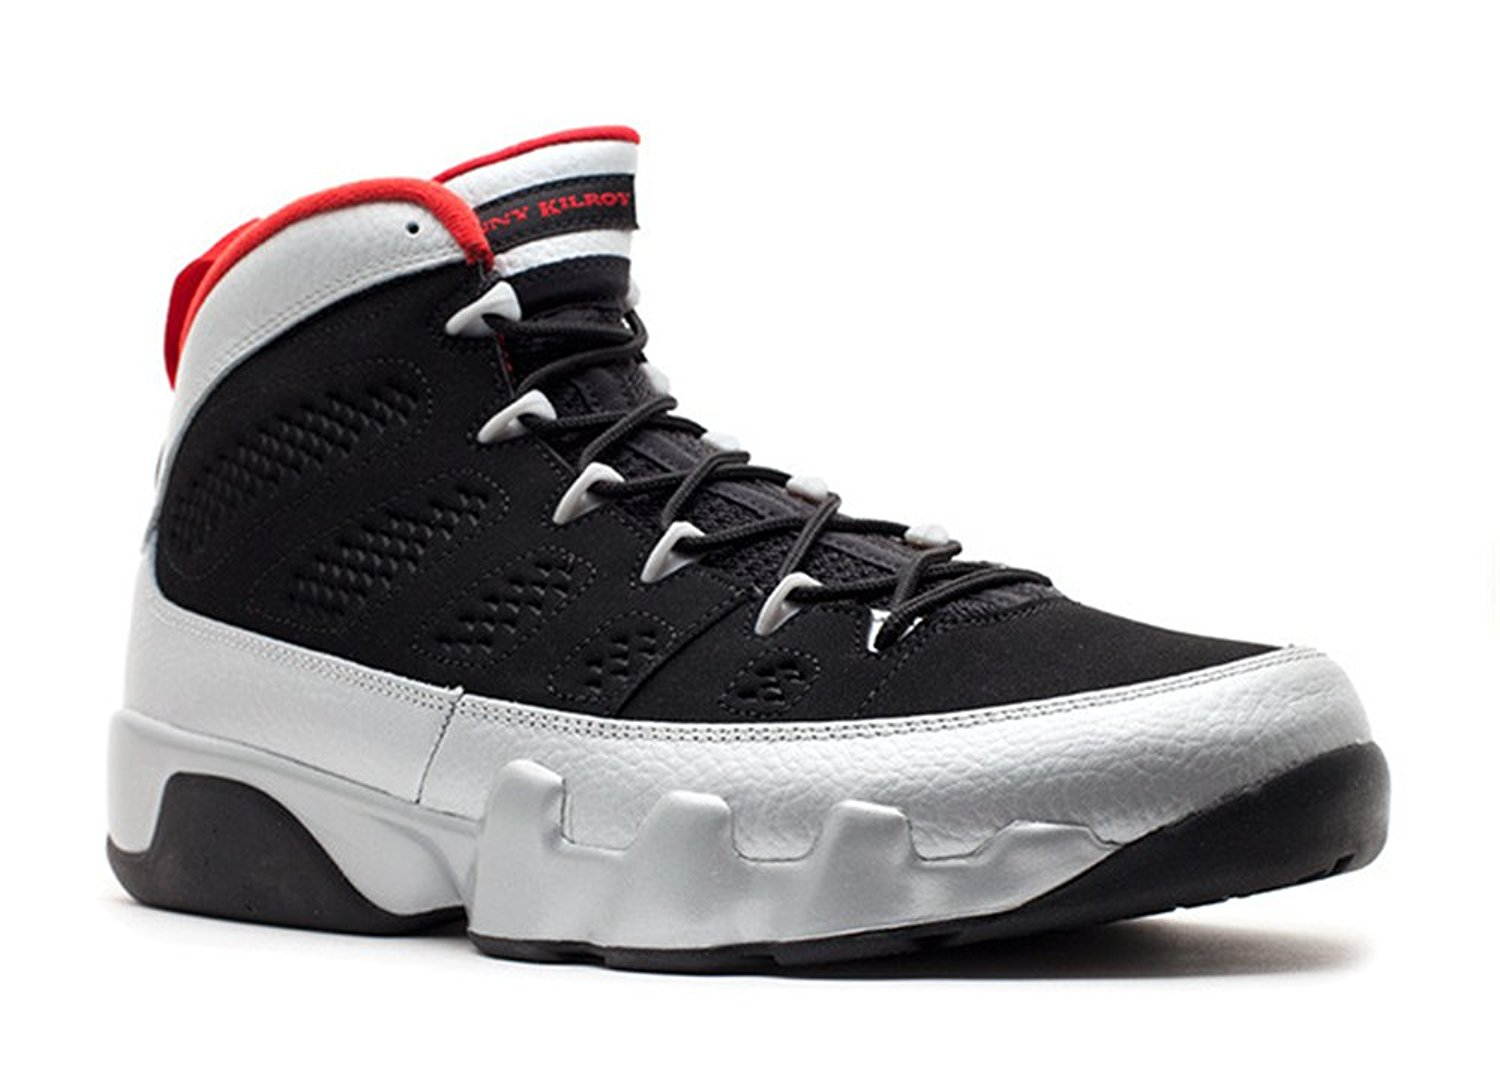 timeless design 4bc6b 429be Get Quotations · Tony Barnard Basketball Running Sneakers Leather Athletic  Shoes For Men Air Jordan 9 Retro johnny kilroy